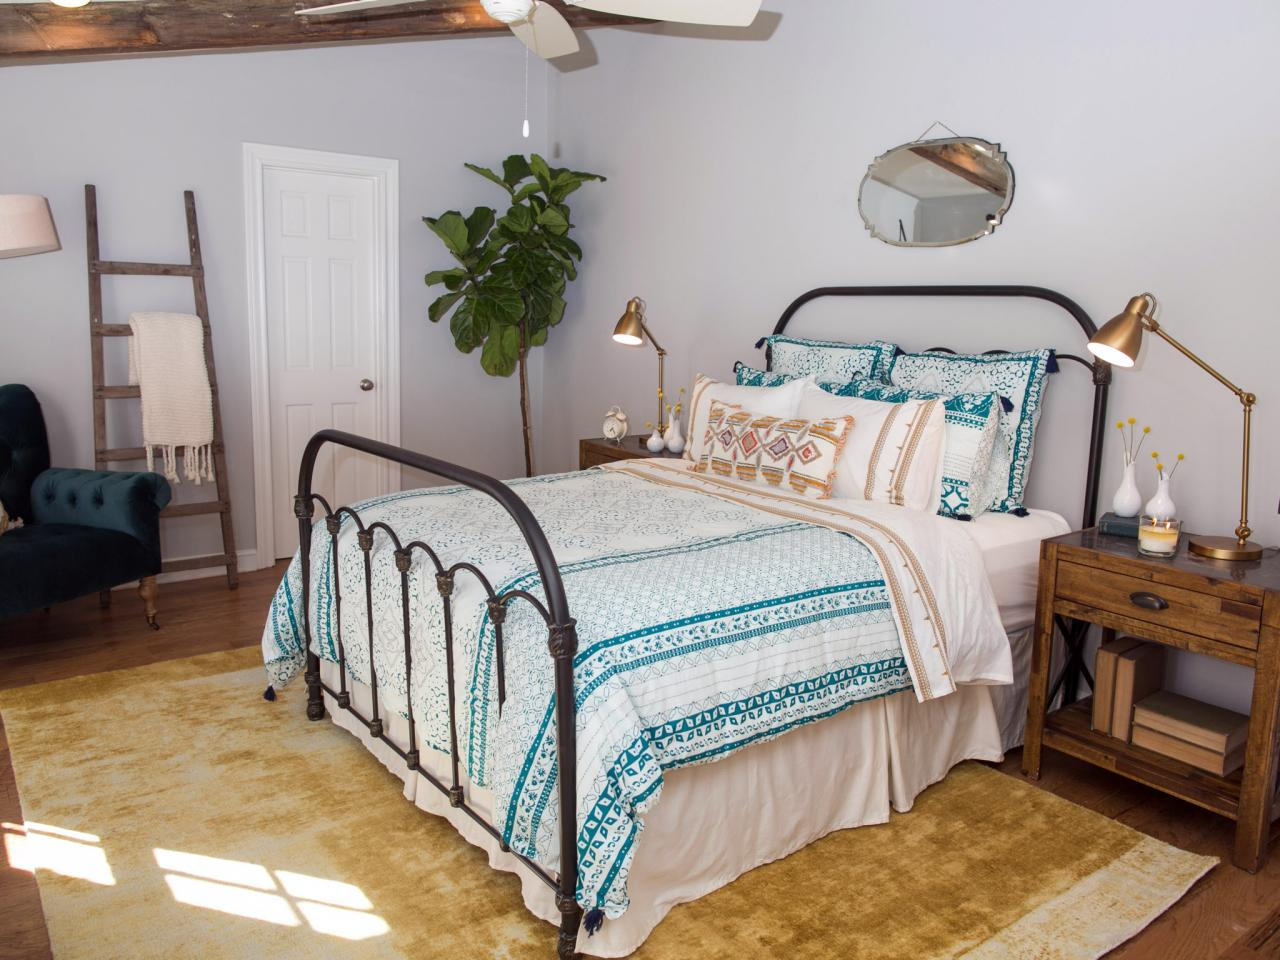 Joanna gaines hgtv for Joanna gaines bedroom ideas